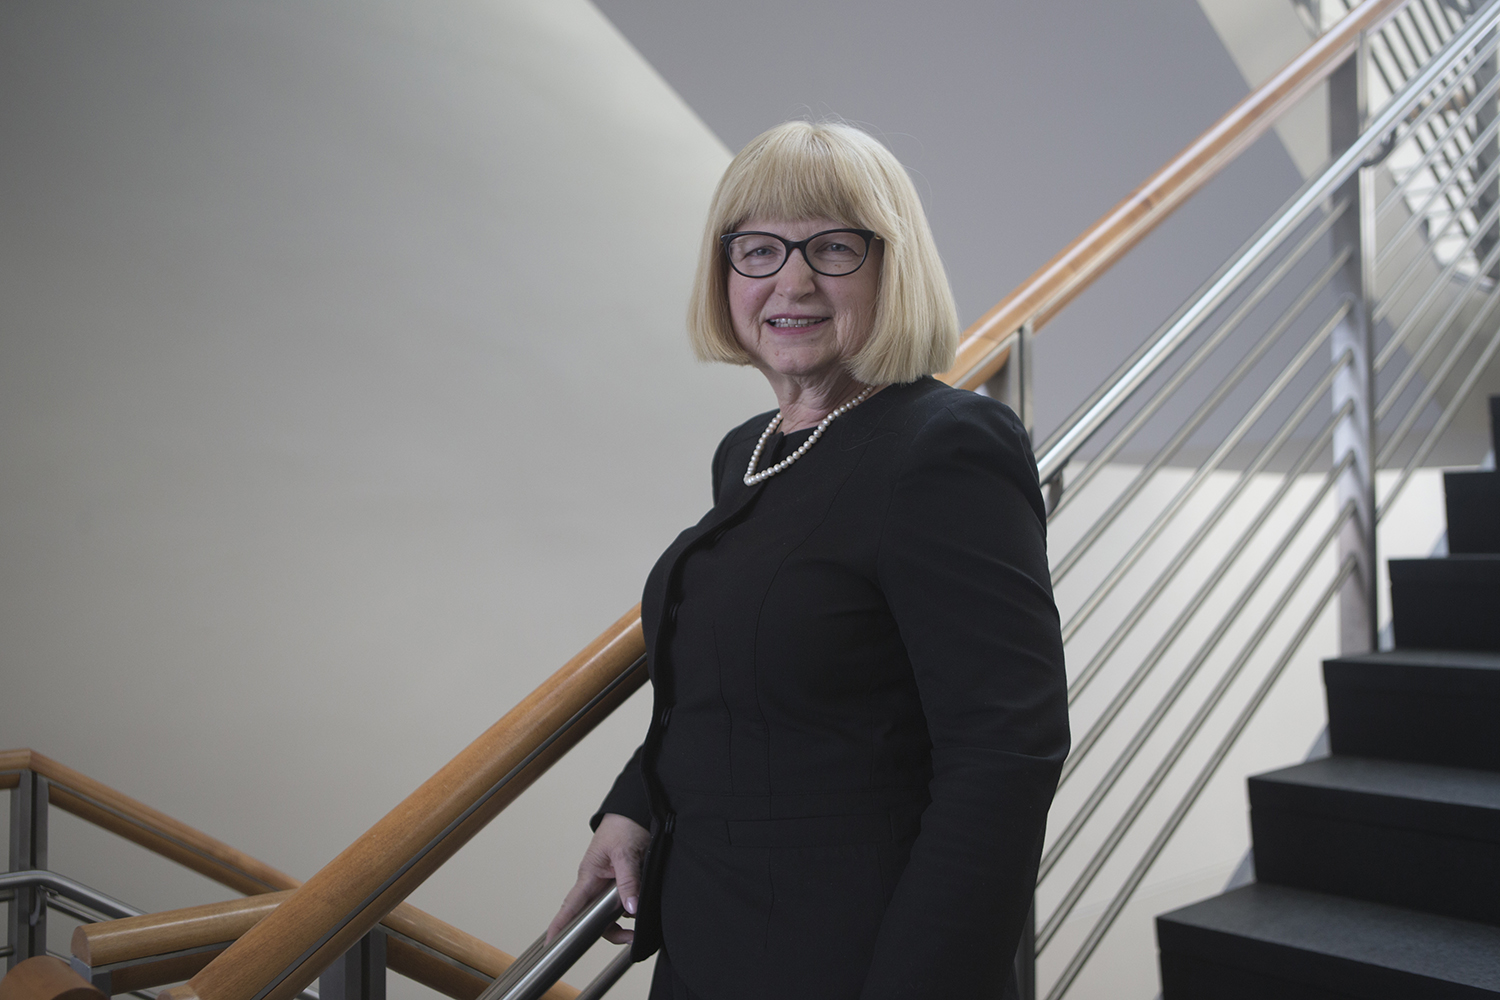 Professor Linda Snetselaar poses for a portrait at the University of Iowa College of Public Health building on Friday, March 1, 2019.